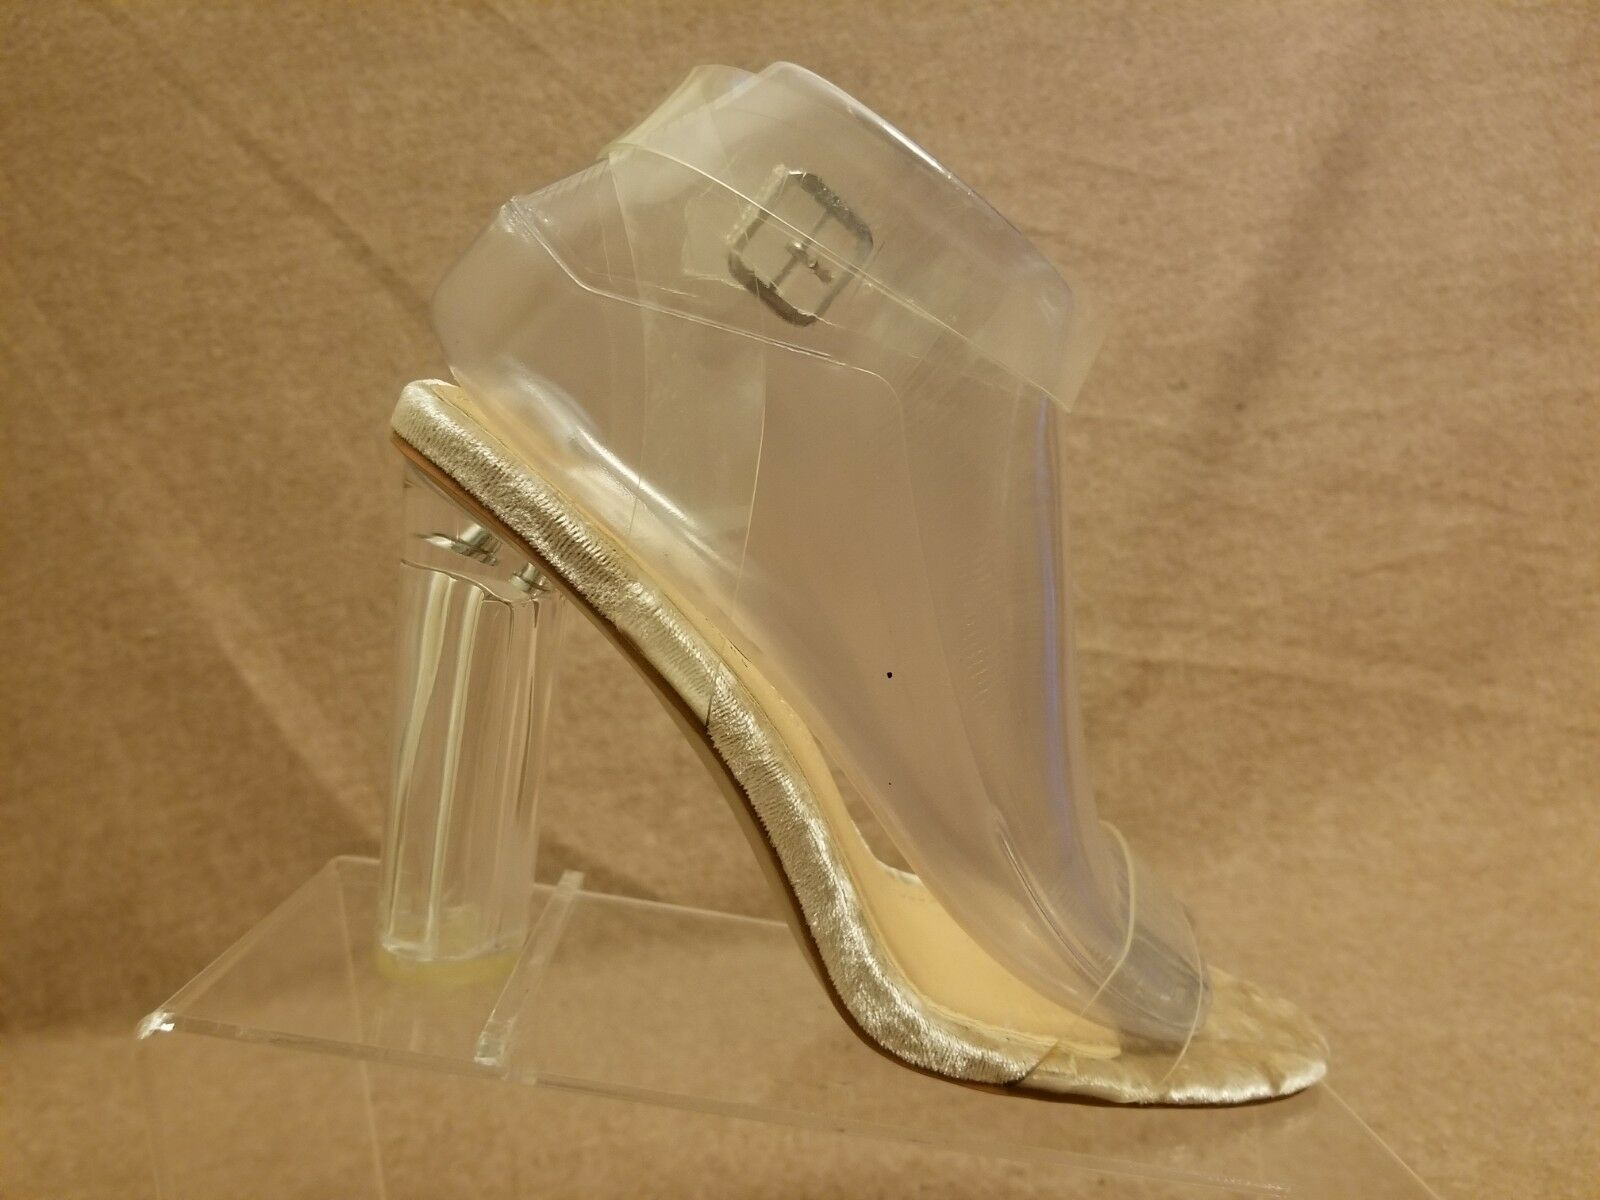 New Ego Women Transparent Perspex Lucite Clear Ankle Strap Heels Sandals Size 5